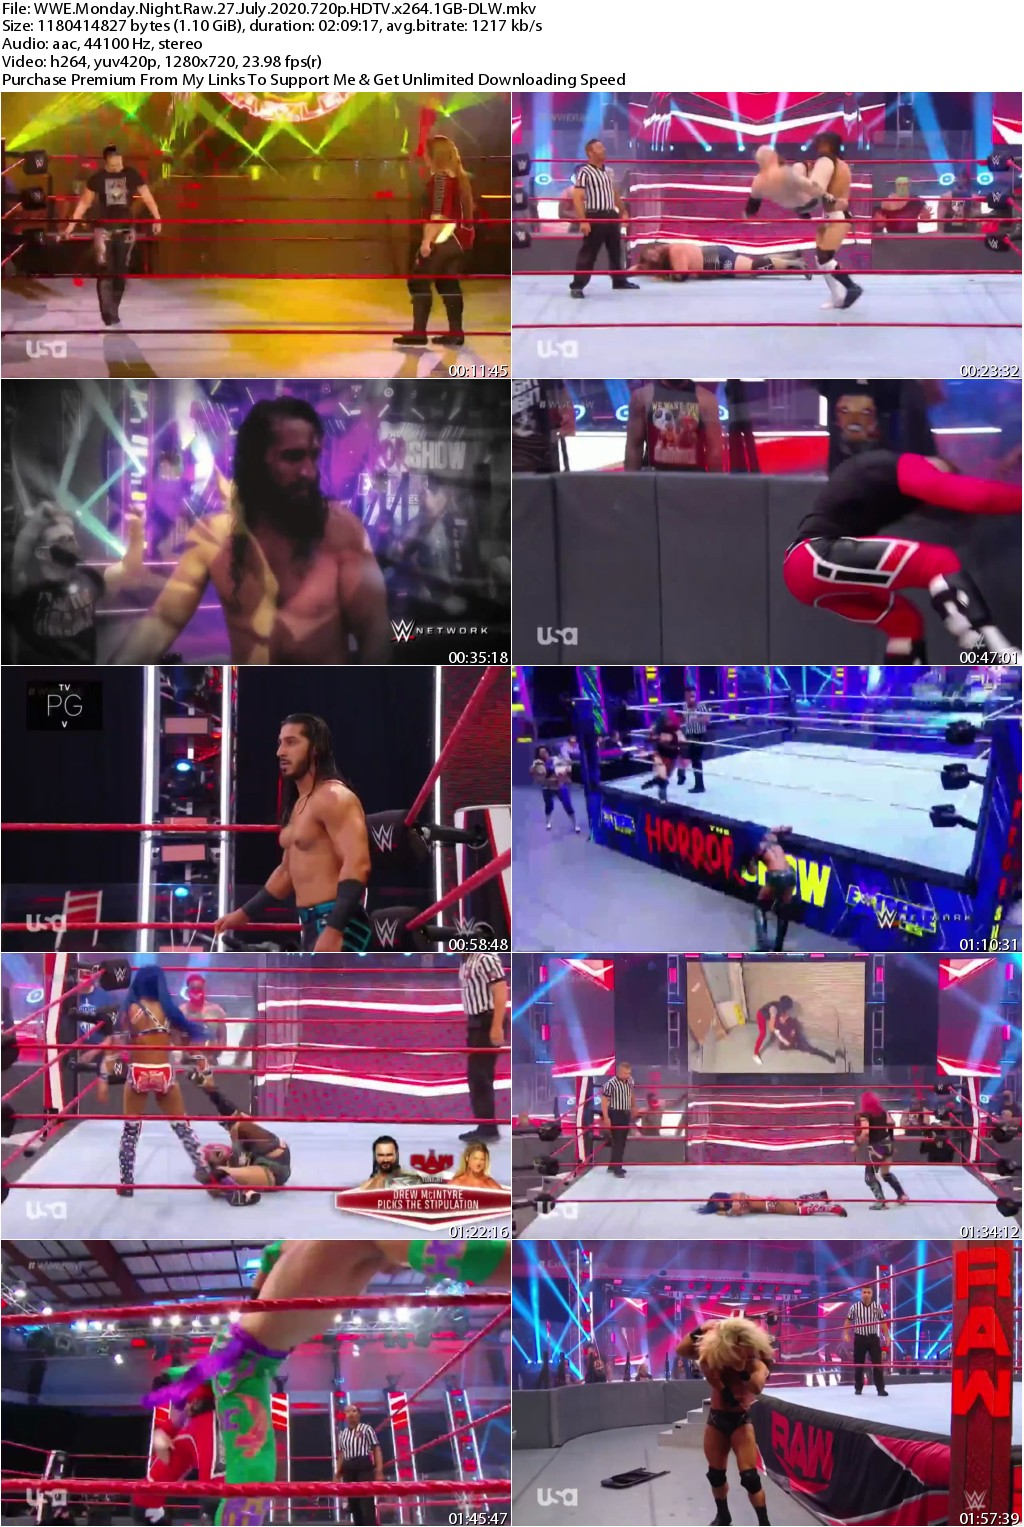 WWE Monday Night Raw 27 July 2020 720p HDTV x264 1GB-DLW